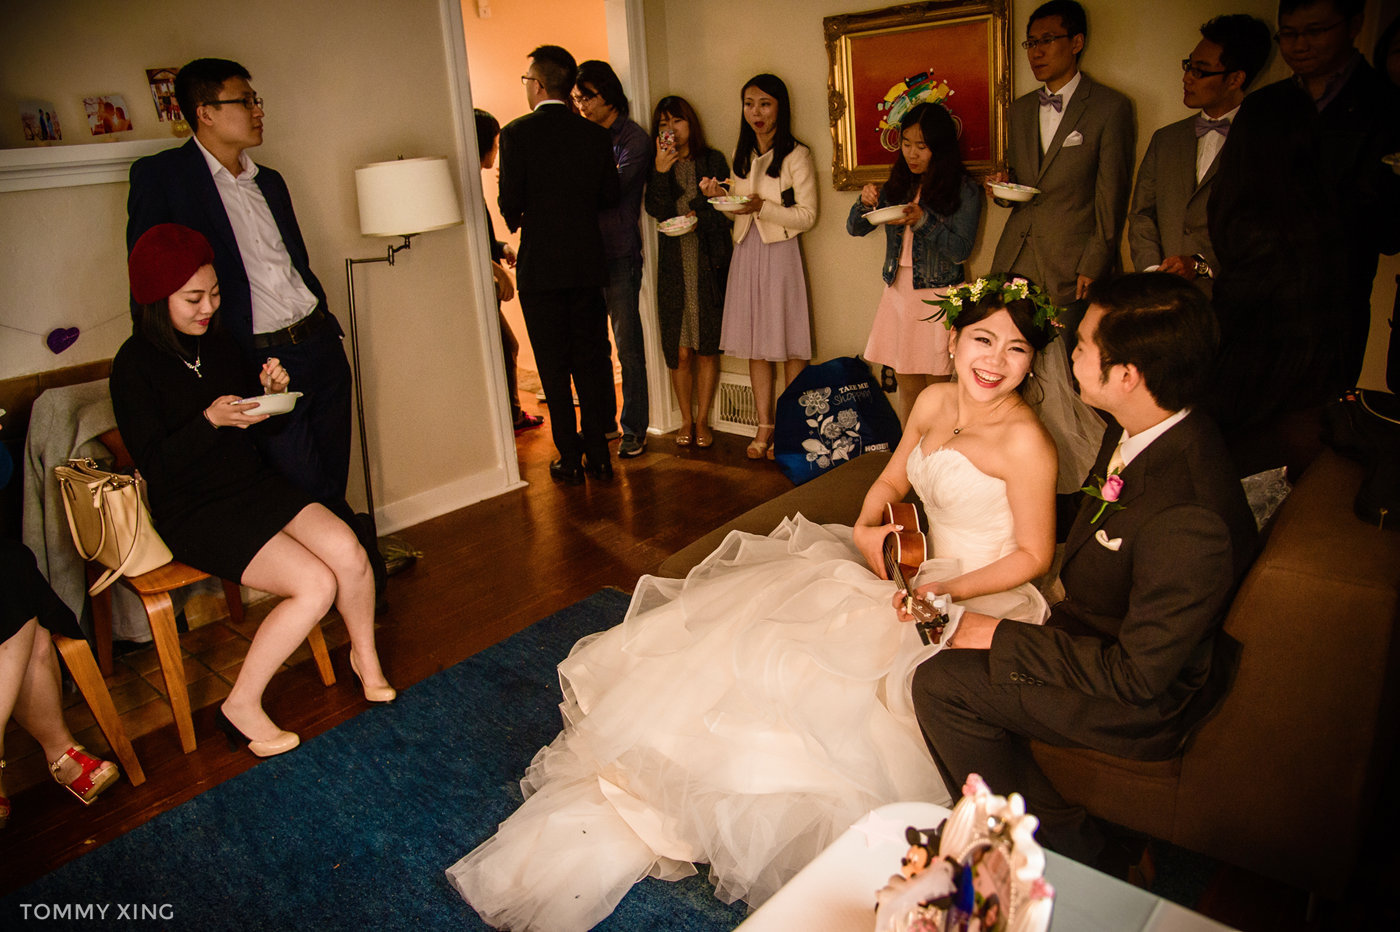 Seattle Wedding and pre wedding Los Angeles Tommy Xing Photography 西雅图洛杉矶旧金山婚礼婚纱照摄影师 149.jpg